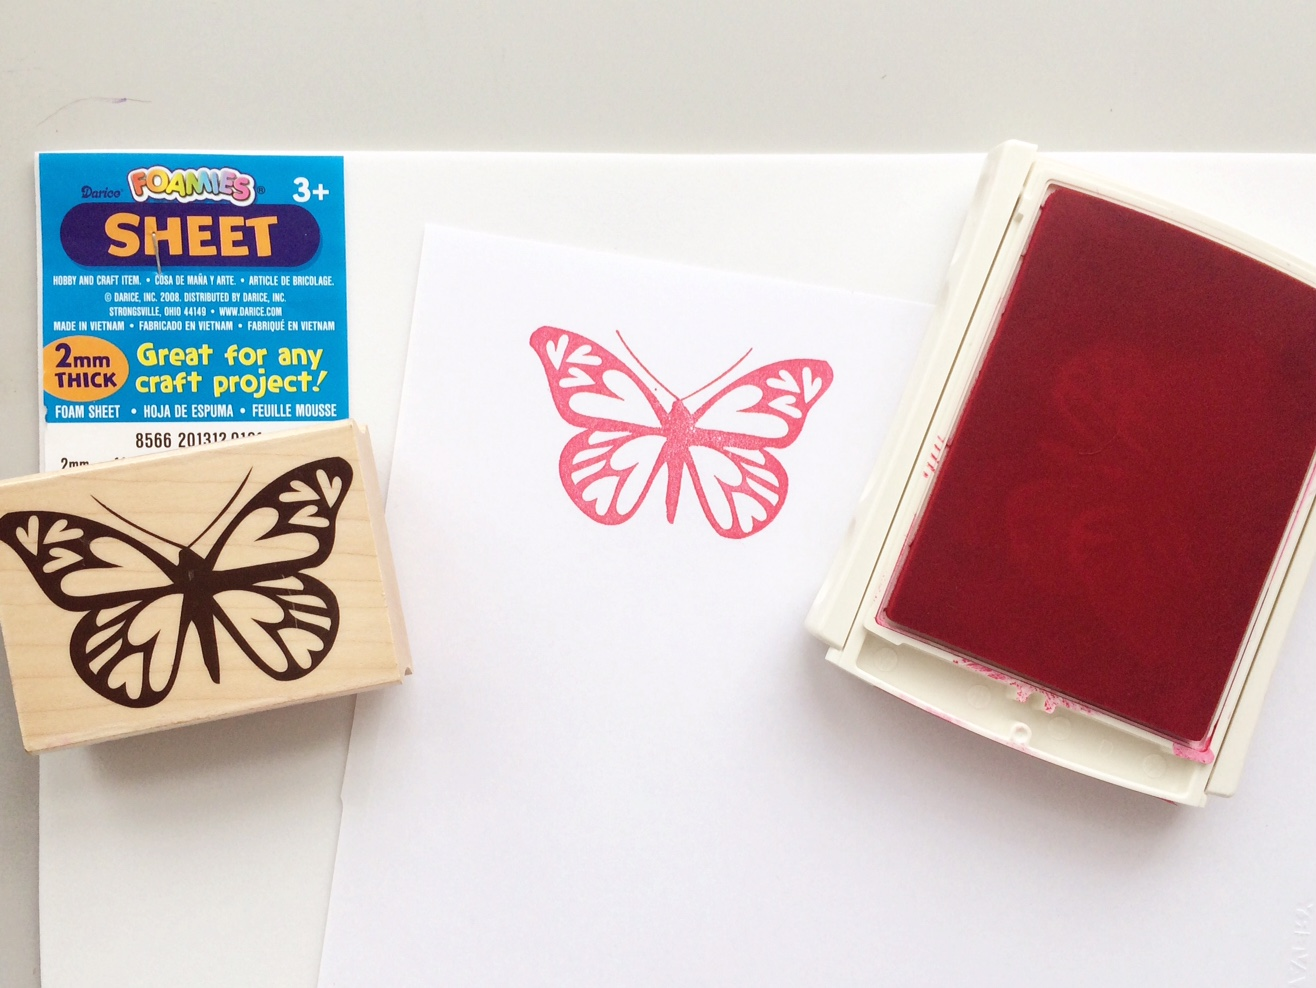 Paper crafting hacks: stamping on foam pad